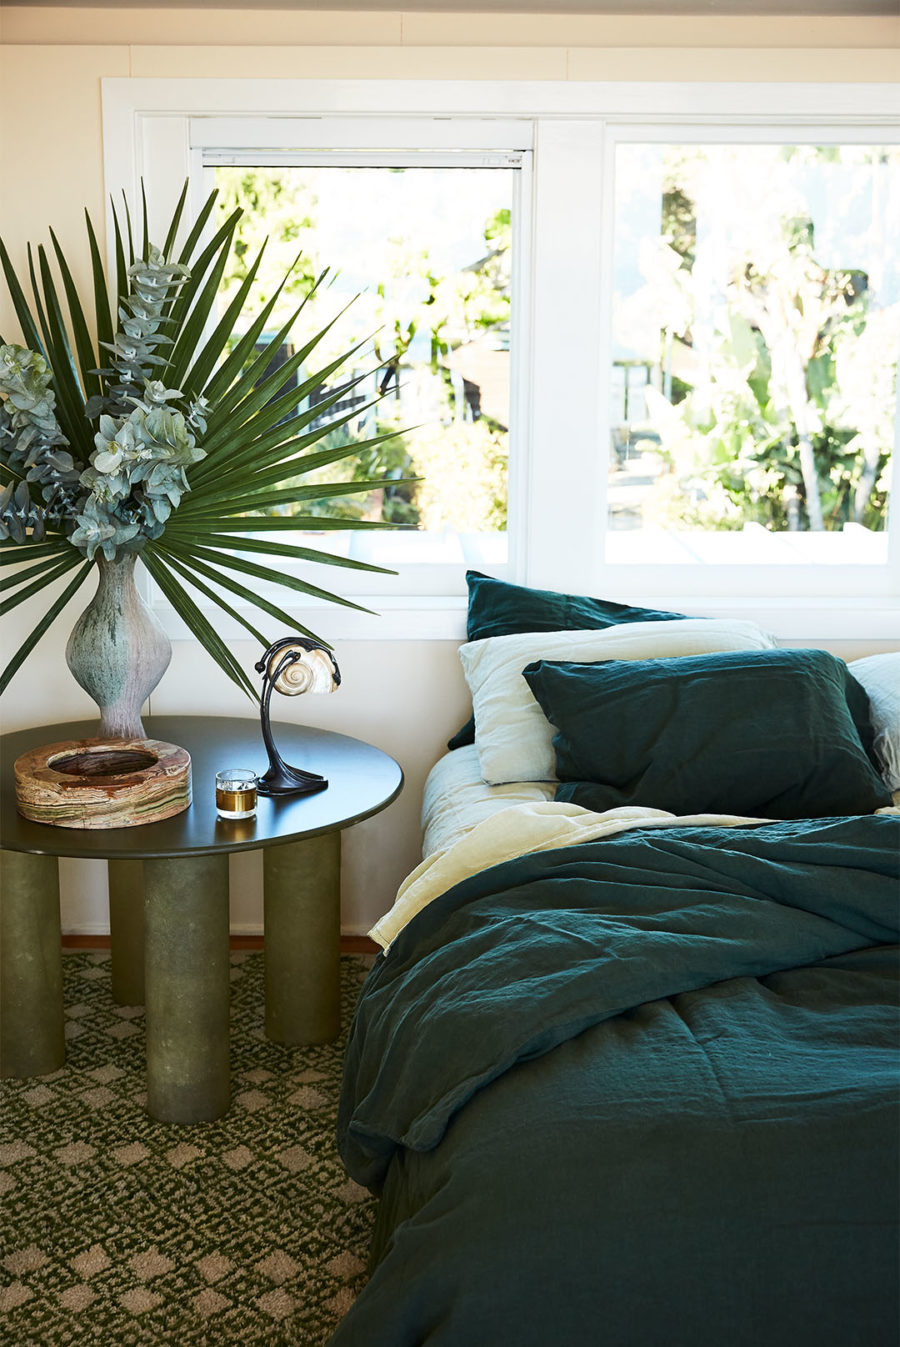 Bedroom photo with plants and bedside table